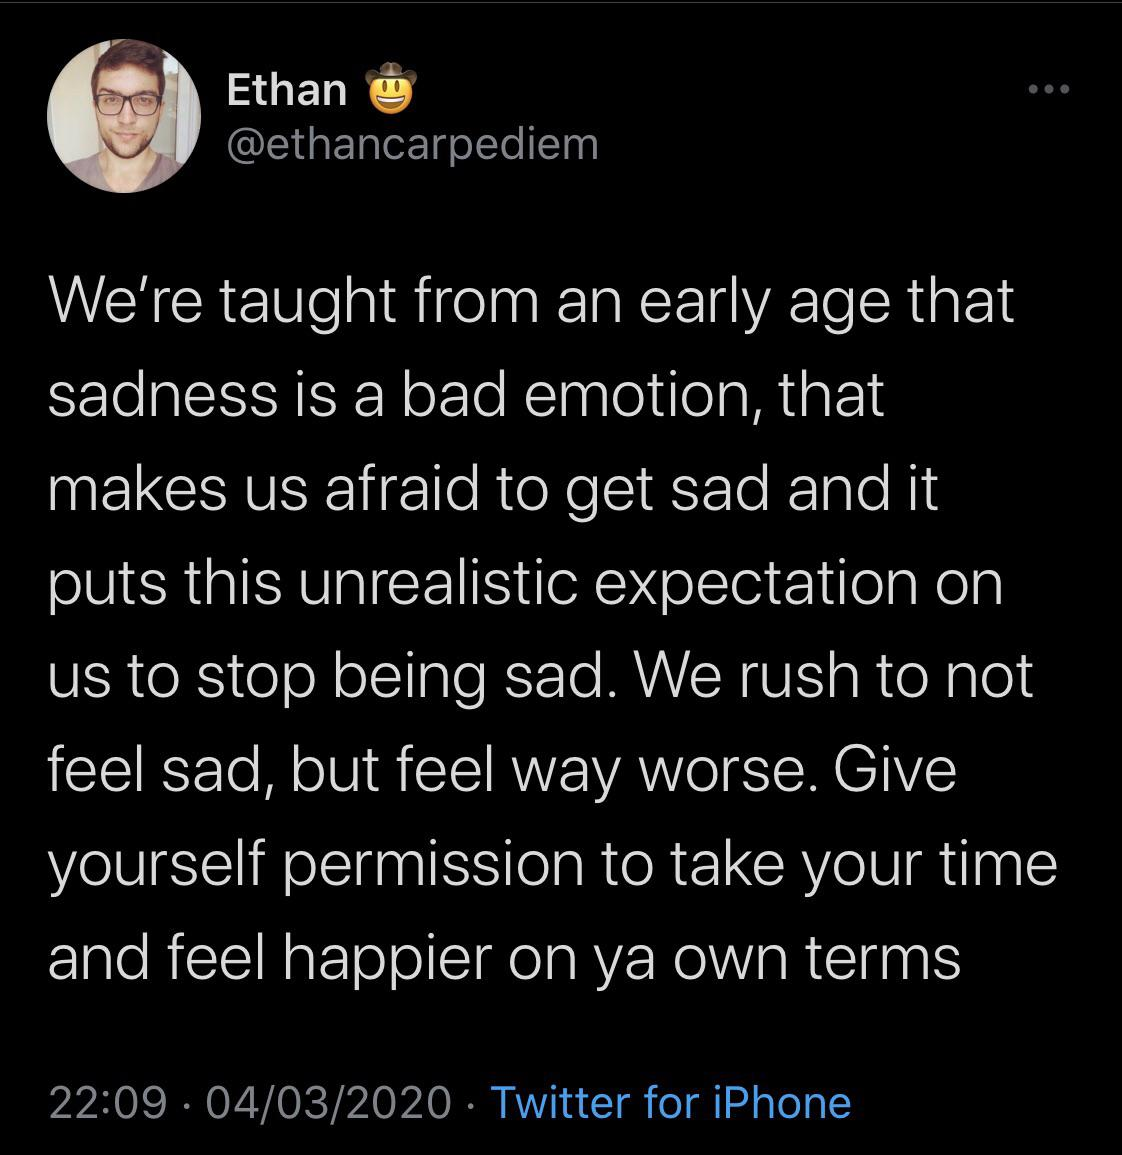 [Image] Give yourself time to heal